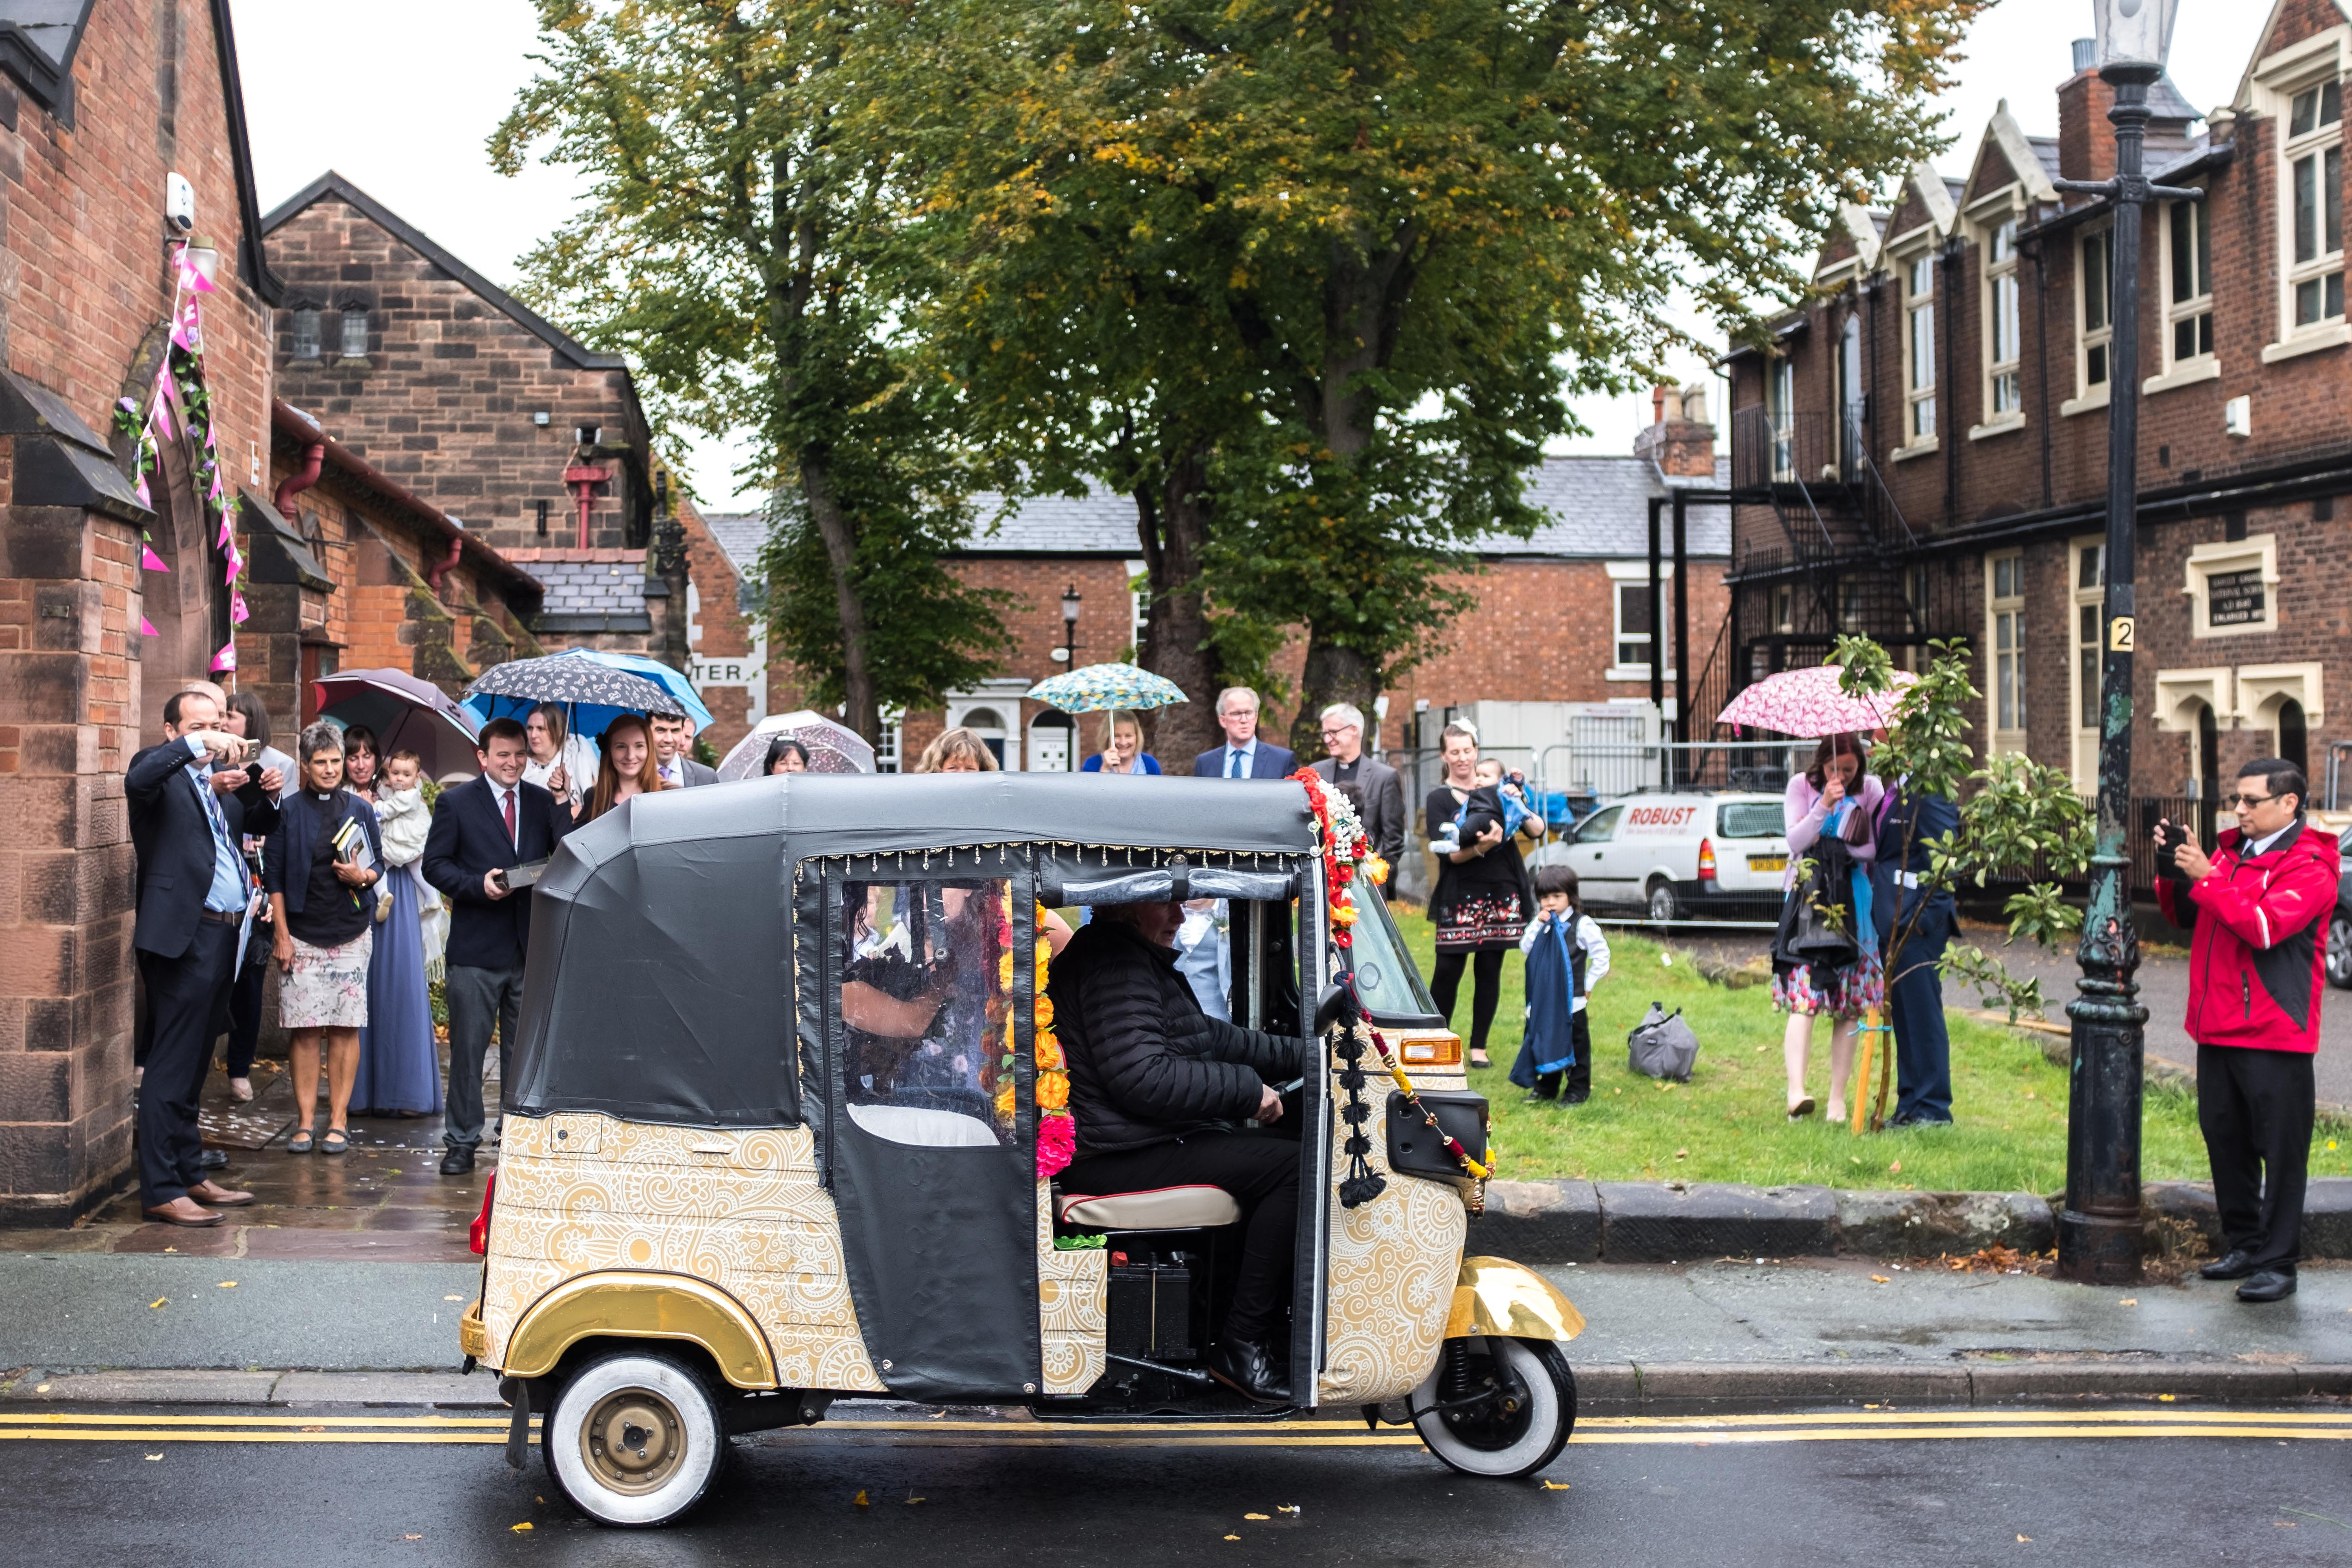 The wedding car arrives to pick up the bride and groom at All Saints church in Chester